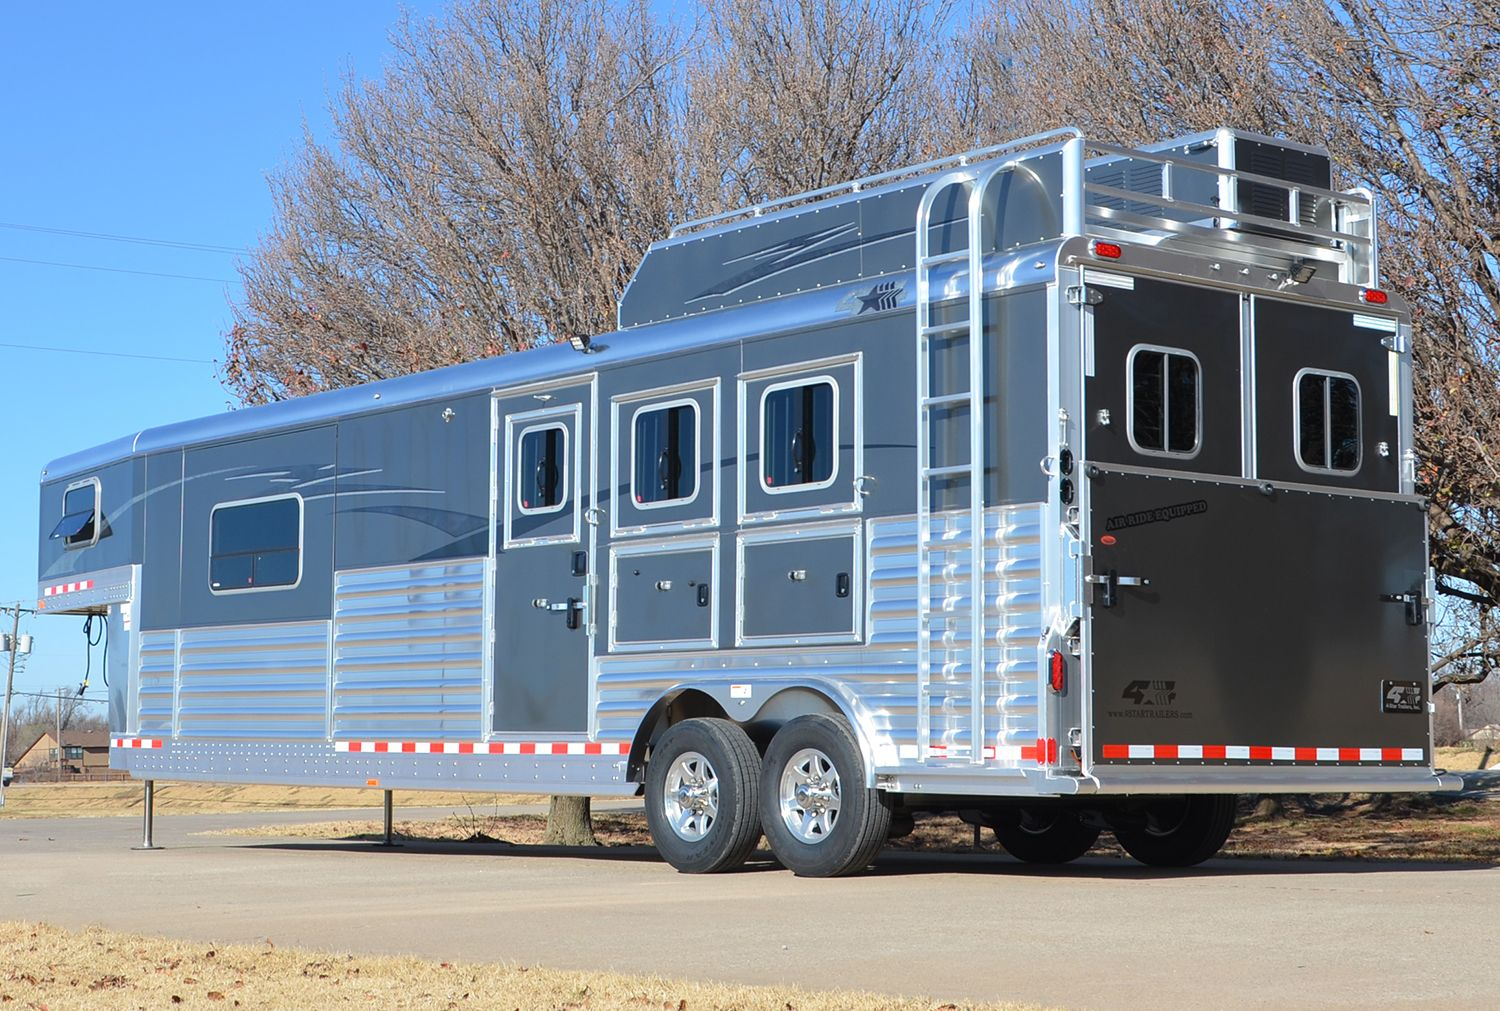 Charcoal Metallic Skin With Pn 512 Graphics In Charcoal 800 848 3095 Horse Trailers Horse Trailer Horses